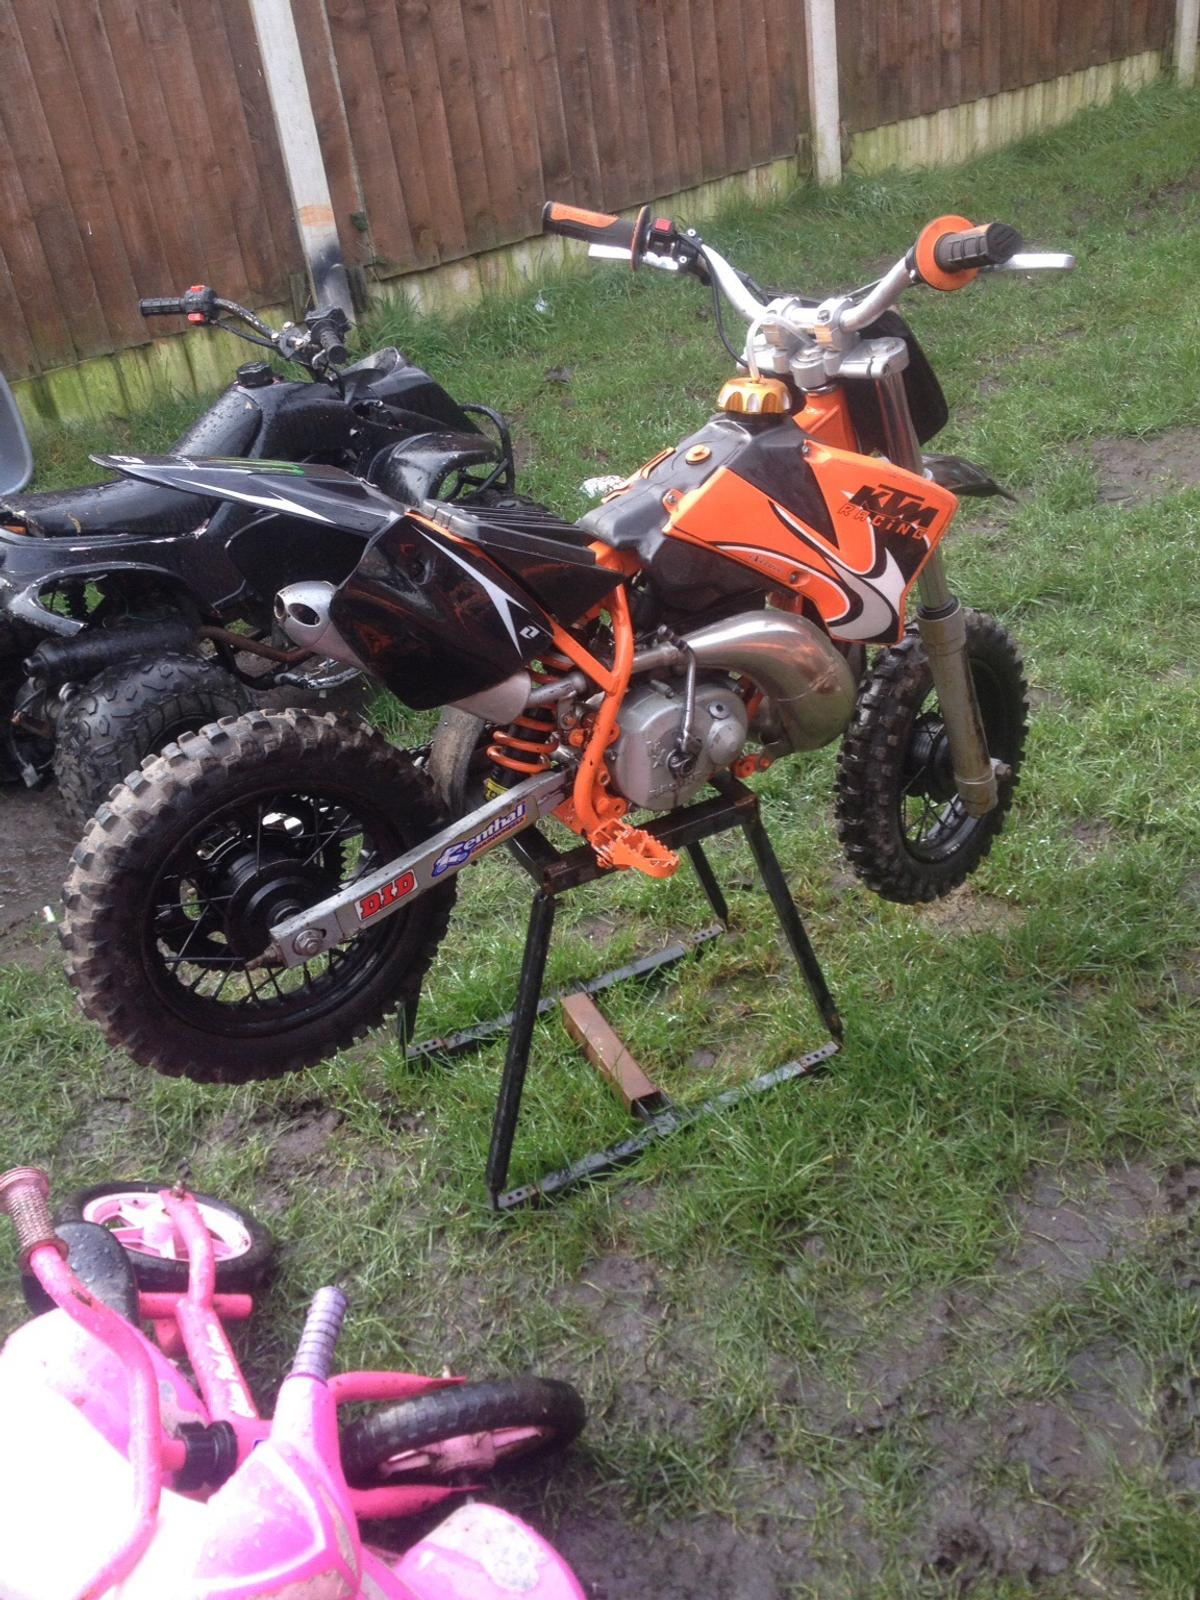 Ktm 50 sx junior 2001 in Wigan for £600 00 for sale - Shpock